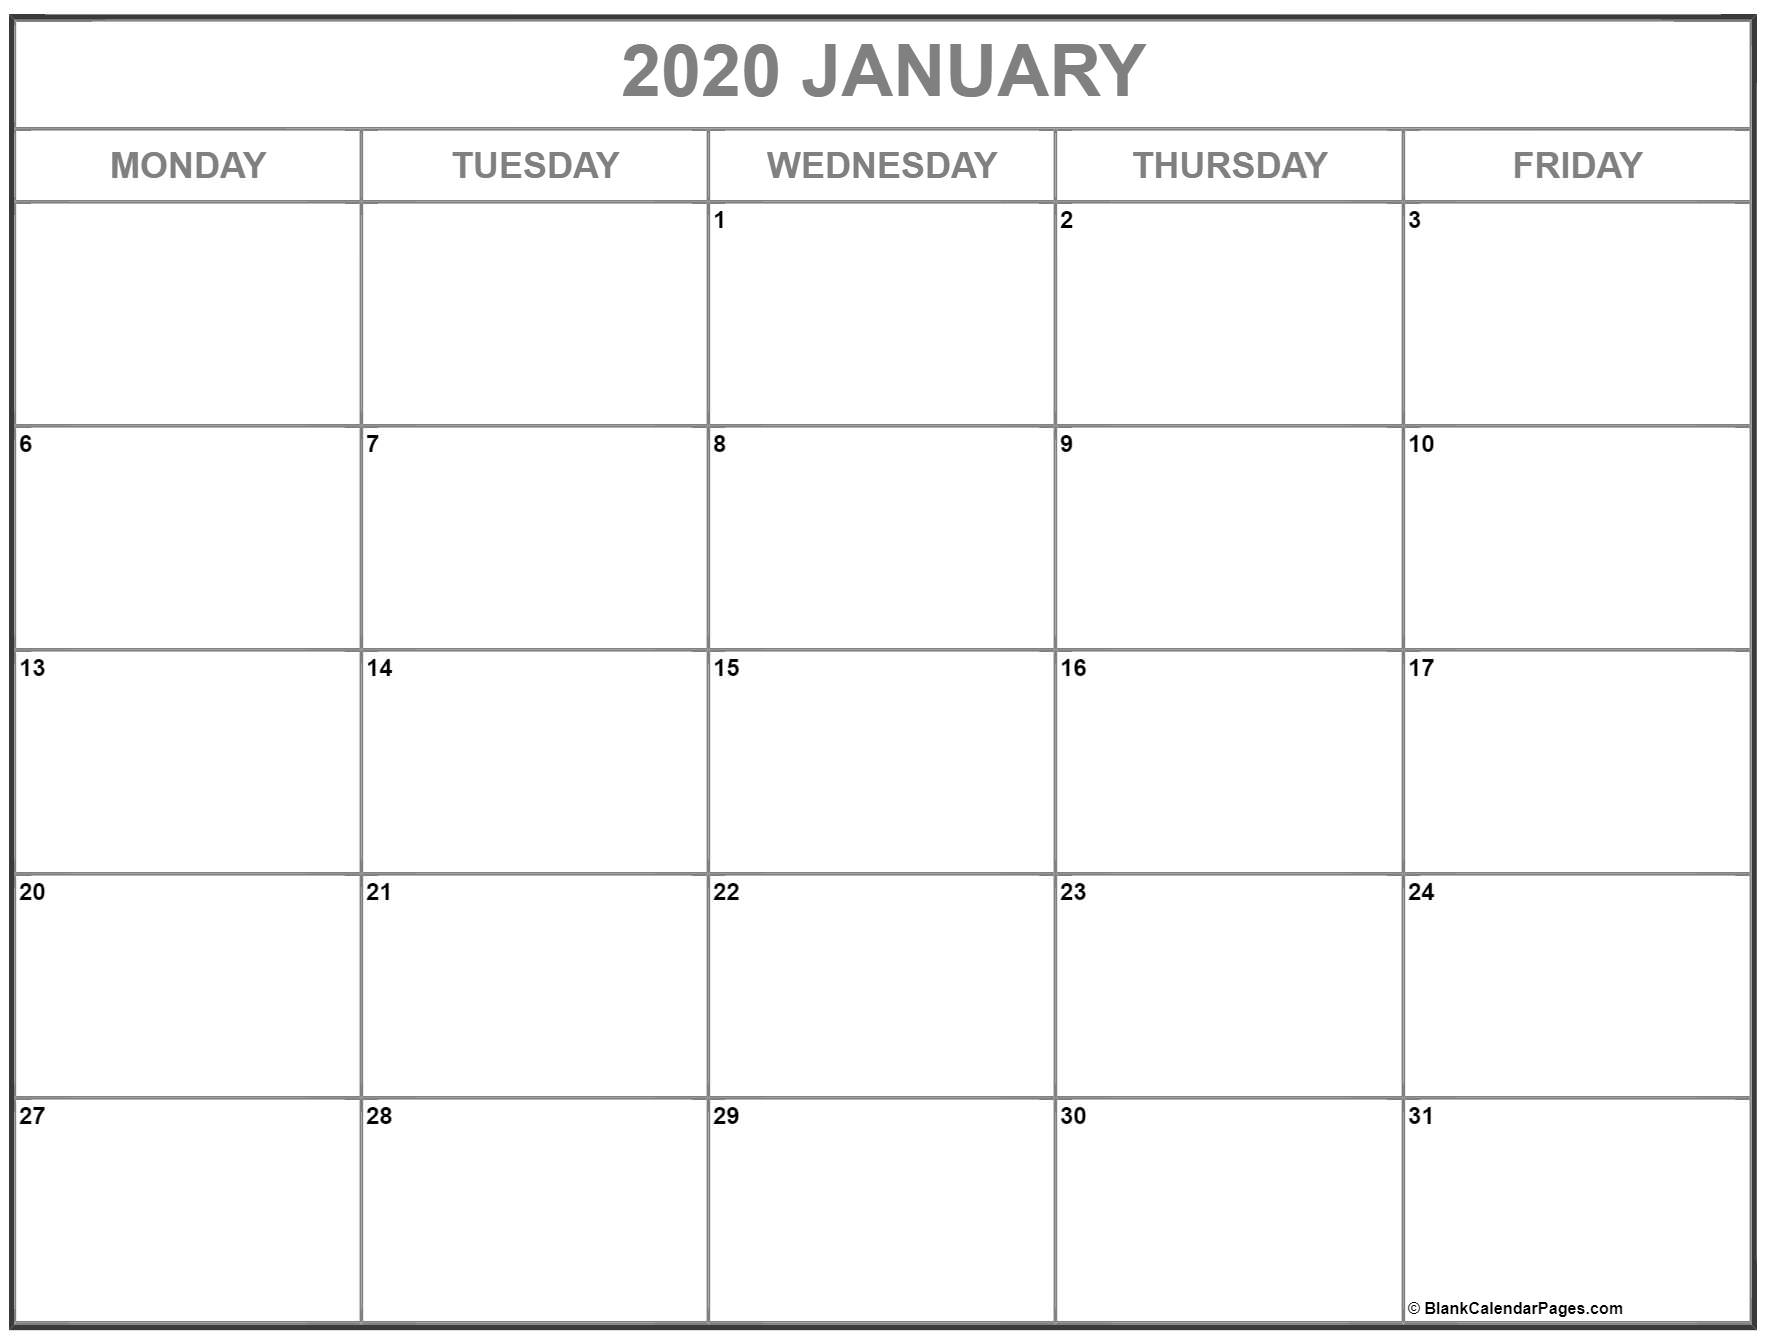 January 2020 Monday Calendar | Monday To Sunday